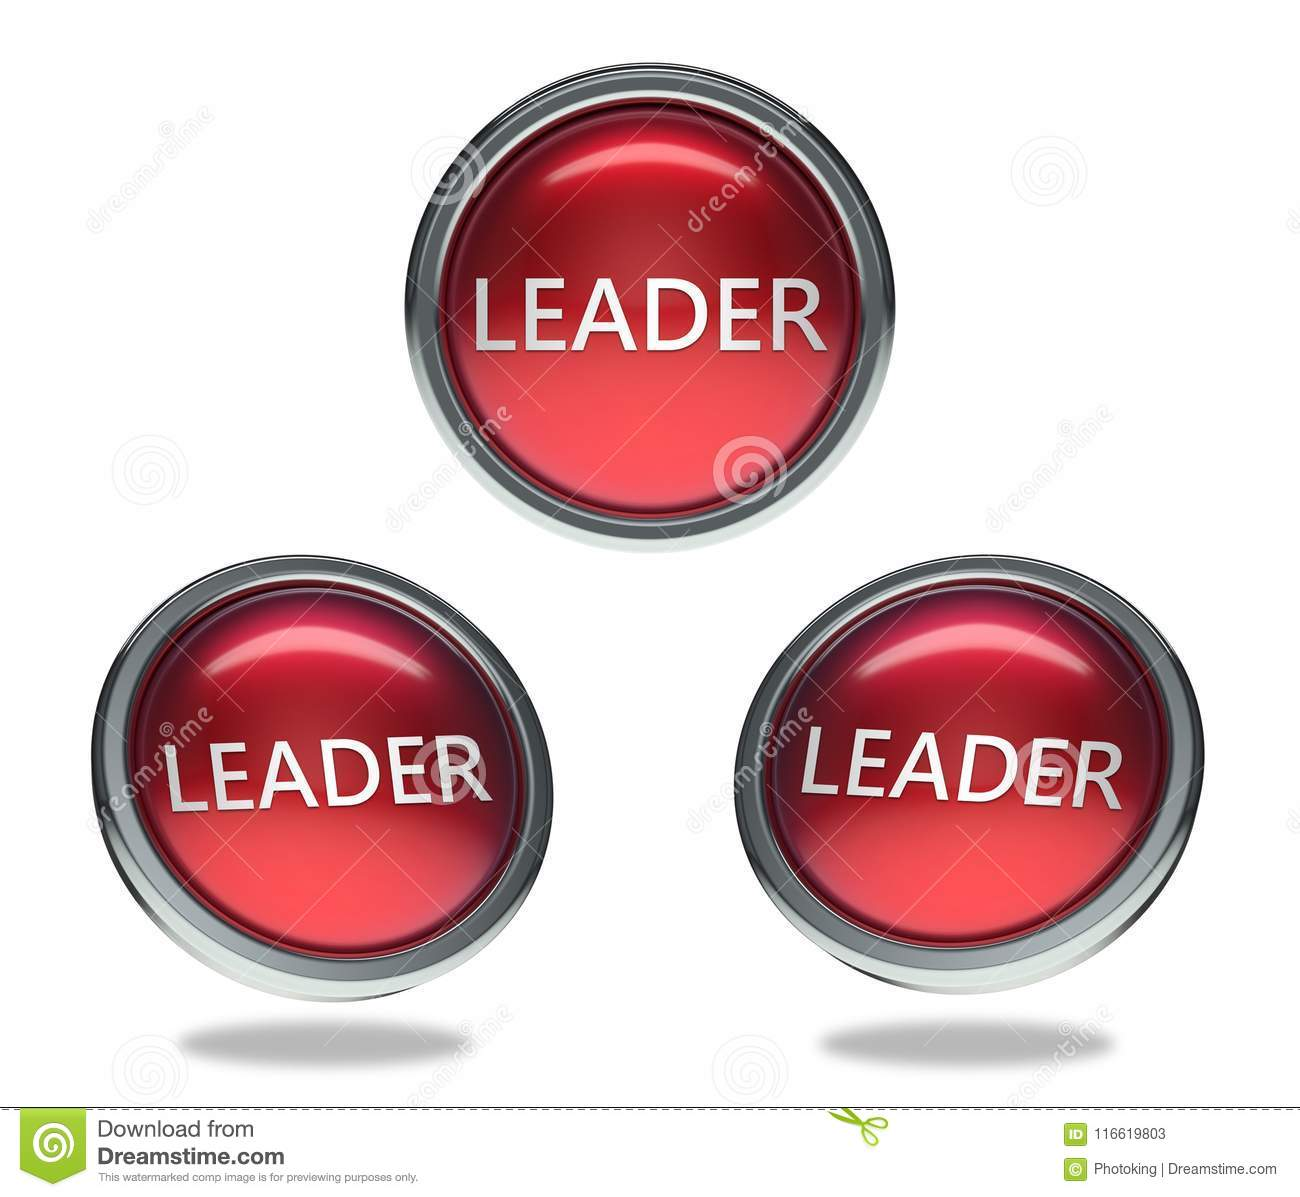 Leader glass button stock illustration. Illustration of isolated ...